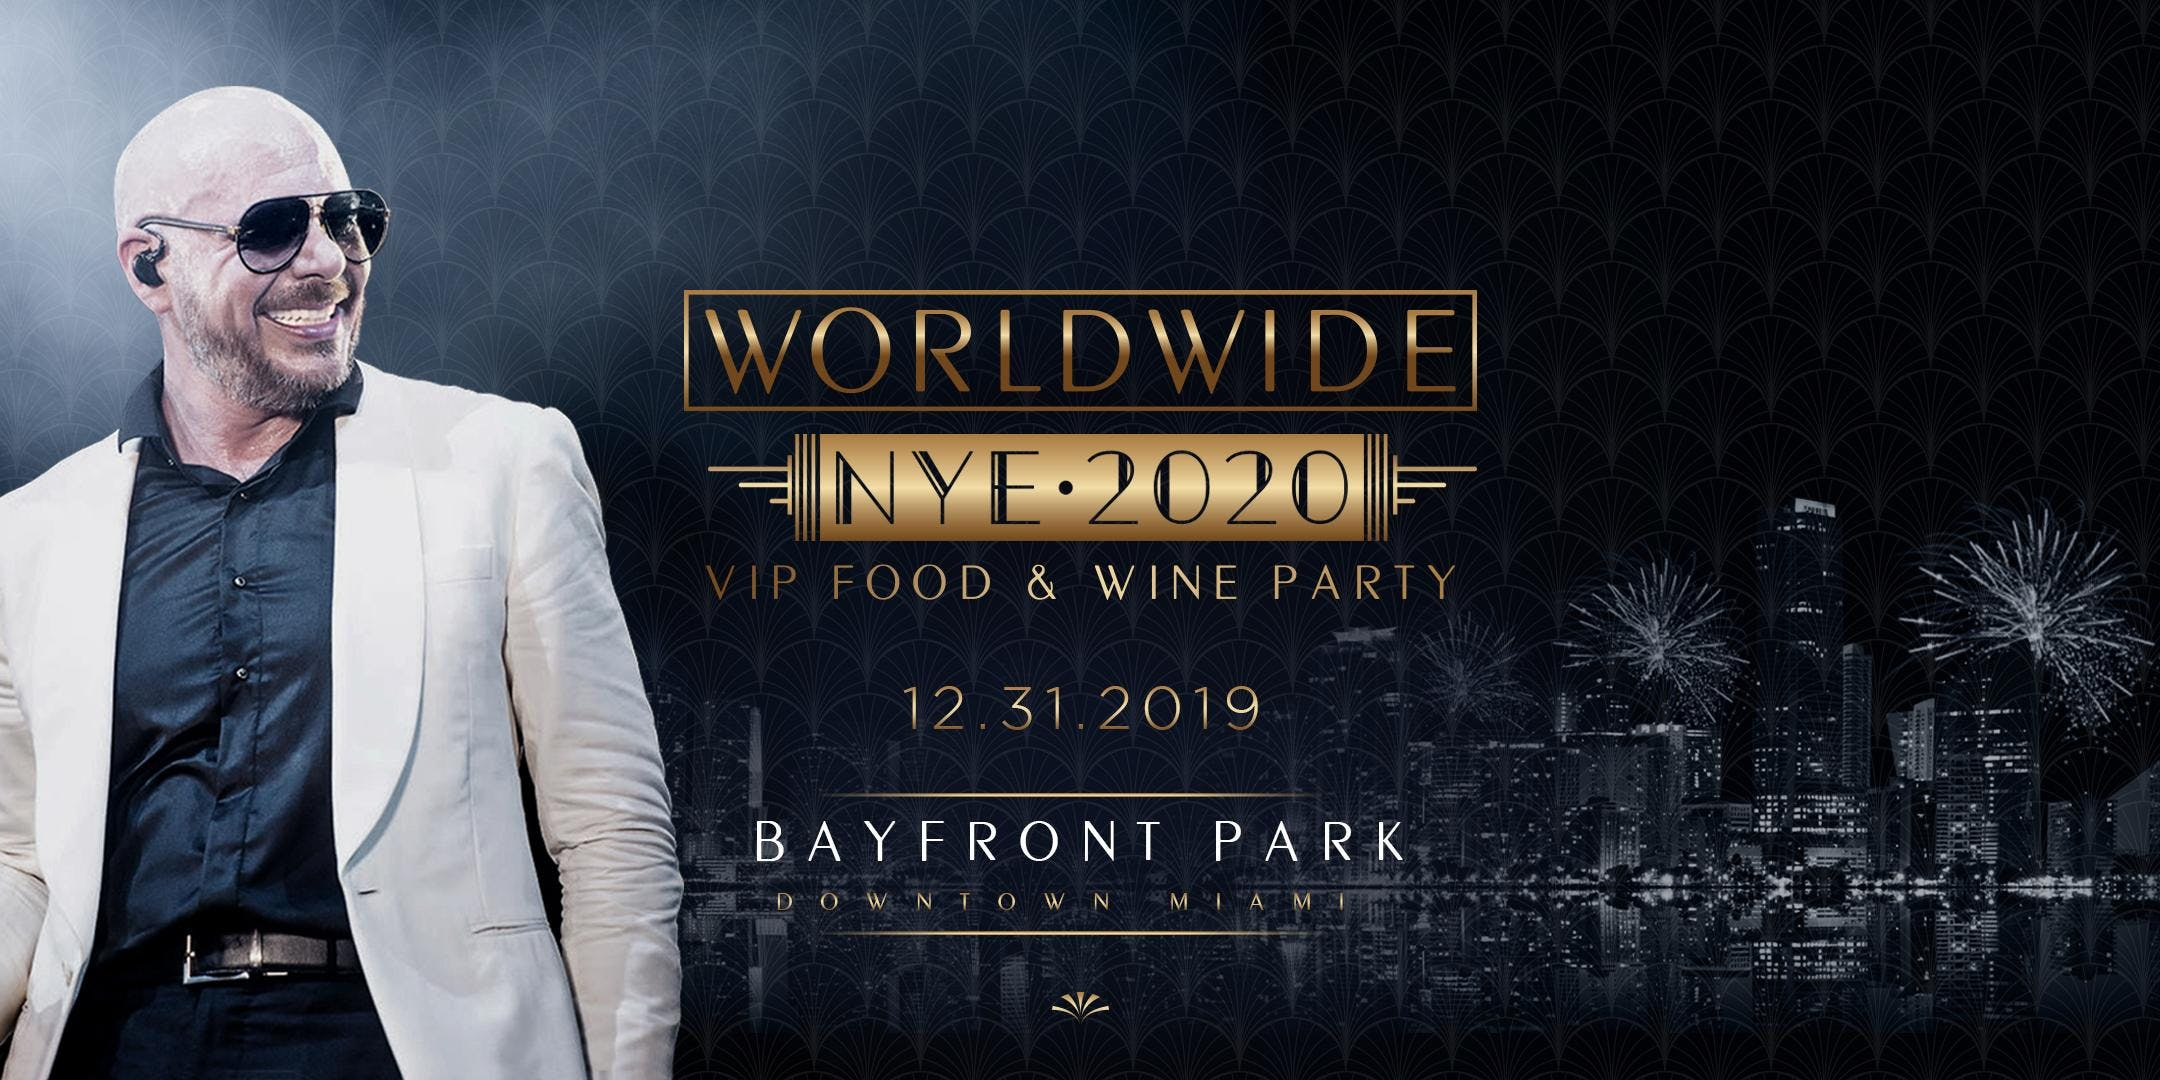 Pitbull New Years Eve 2020.New Years Eve Pitbull Worldwide Vip Food Wine Party At